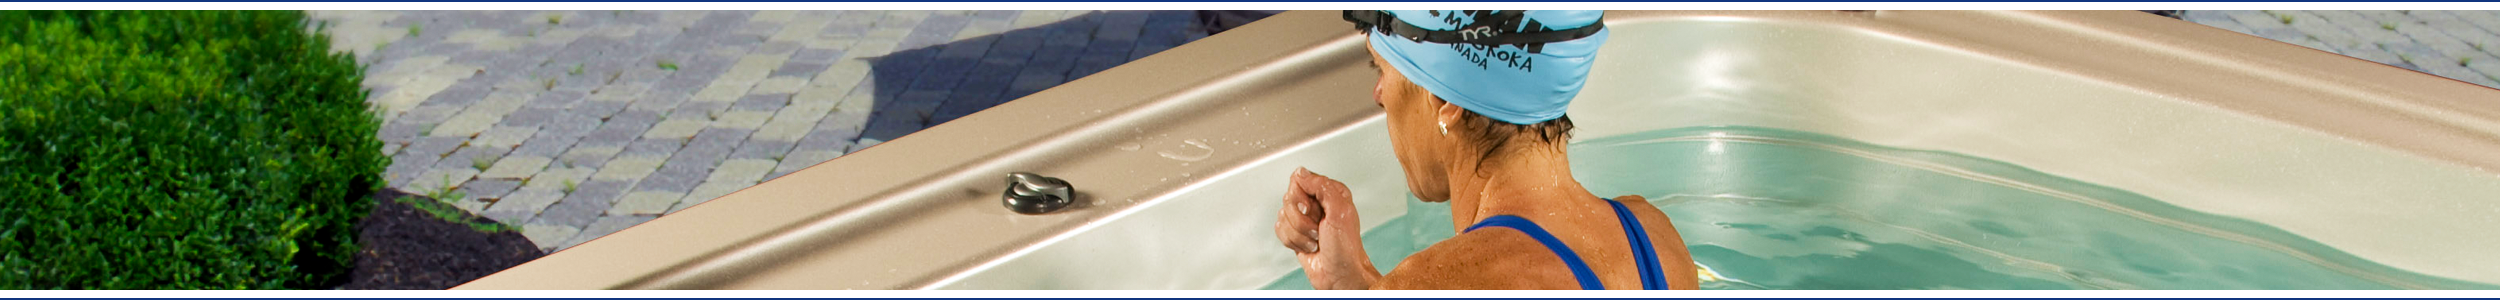 Banner image for swim spas available from Wensum Pools Ltd